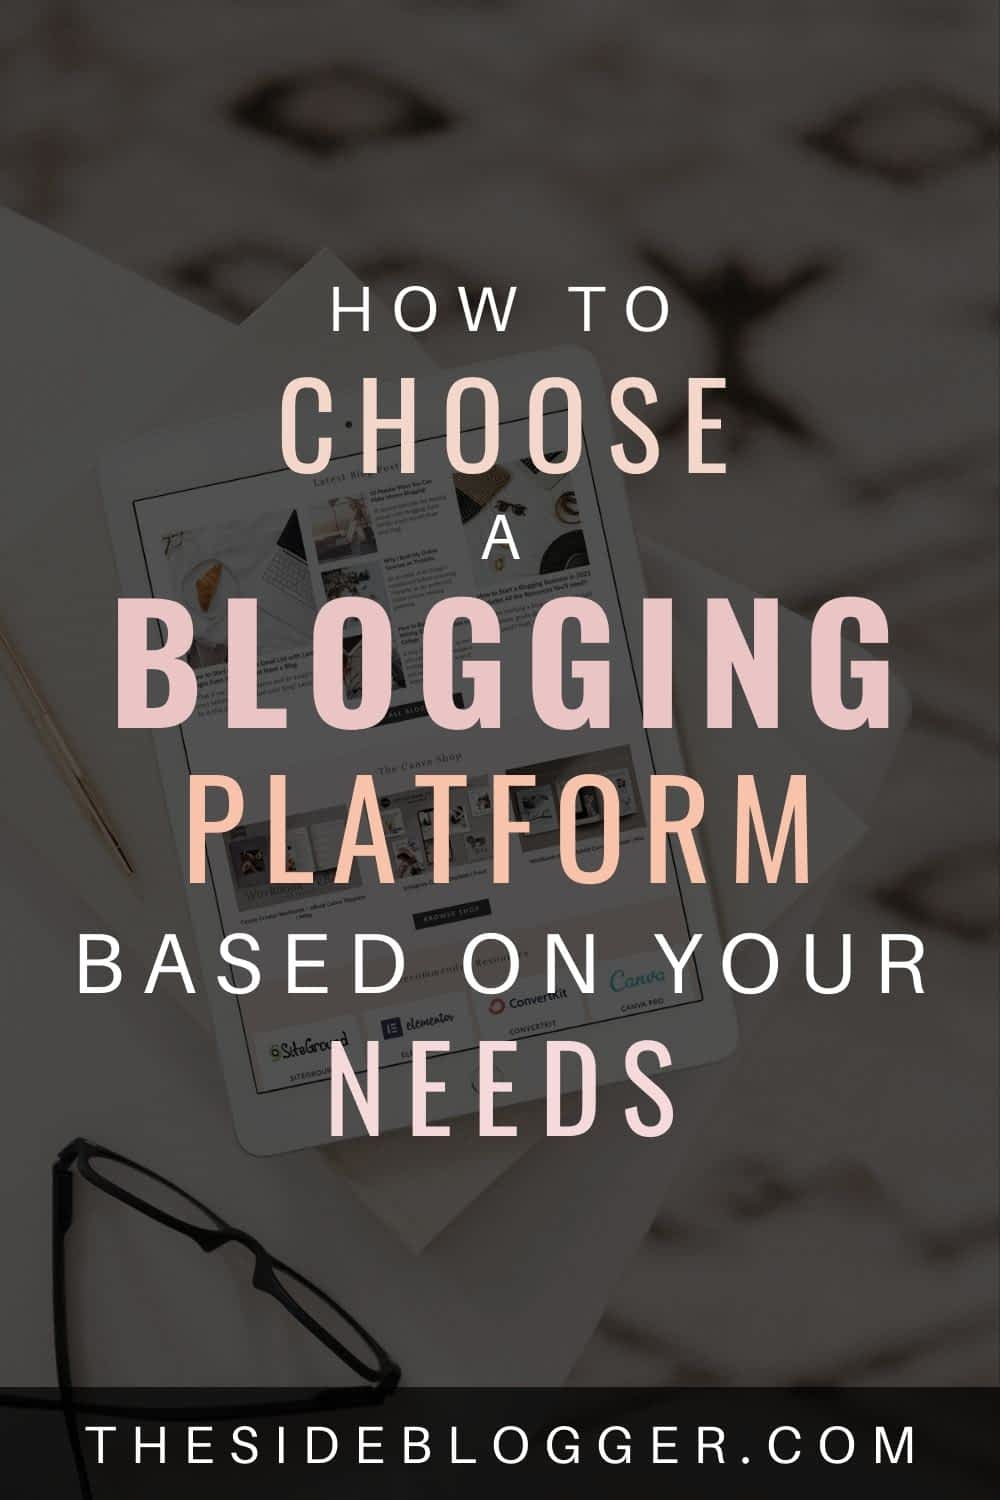 How to choose a blogging platform based on your needs.